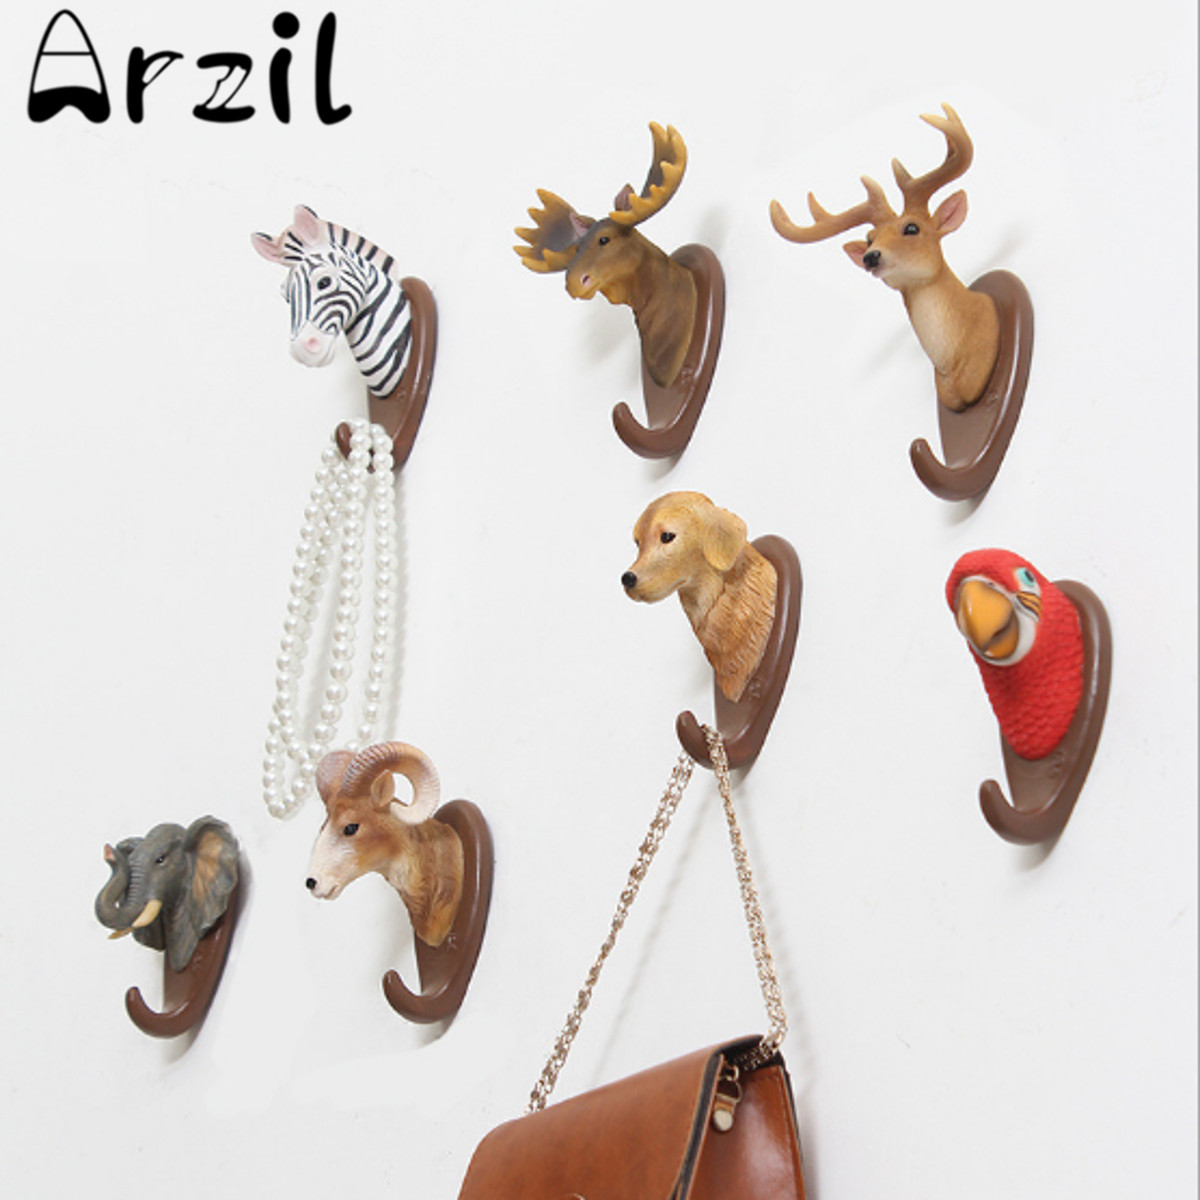 Wall Hanging Hooks compare prices on wall hooks deer- online shopping/buy low price